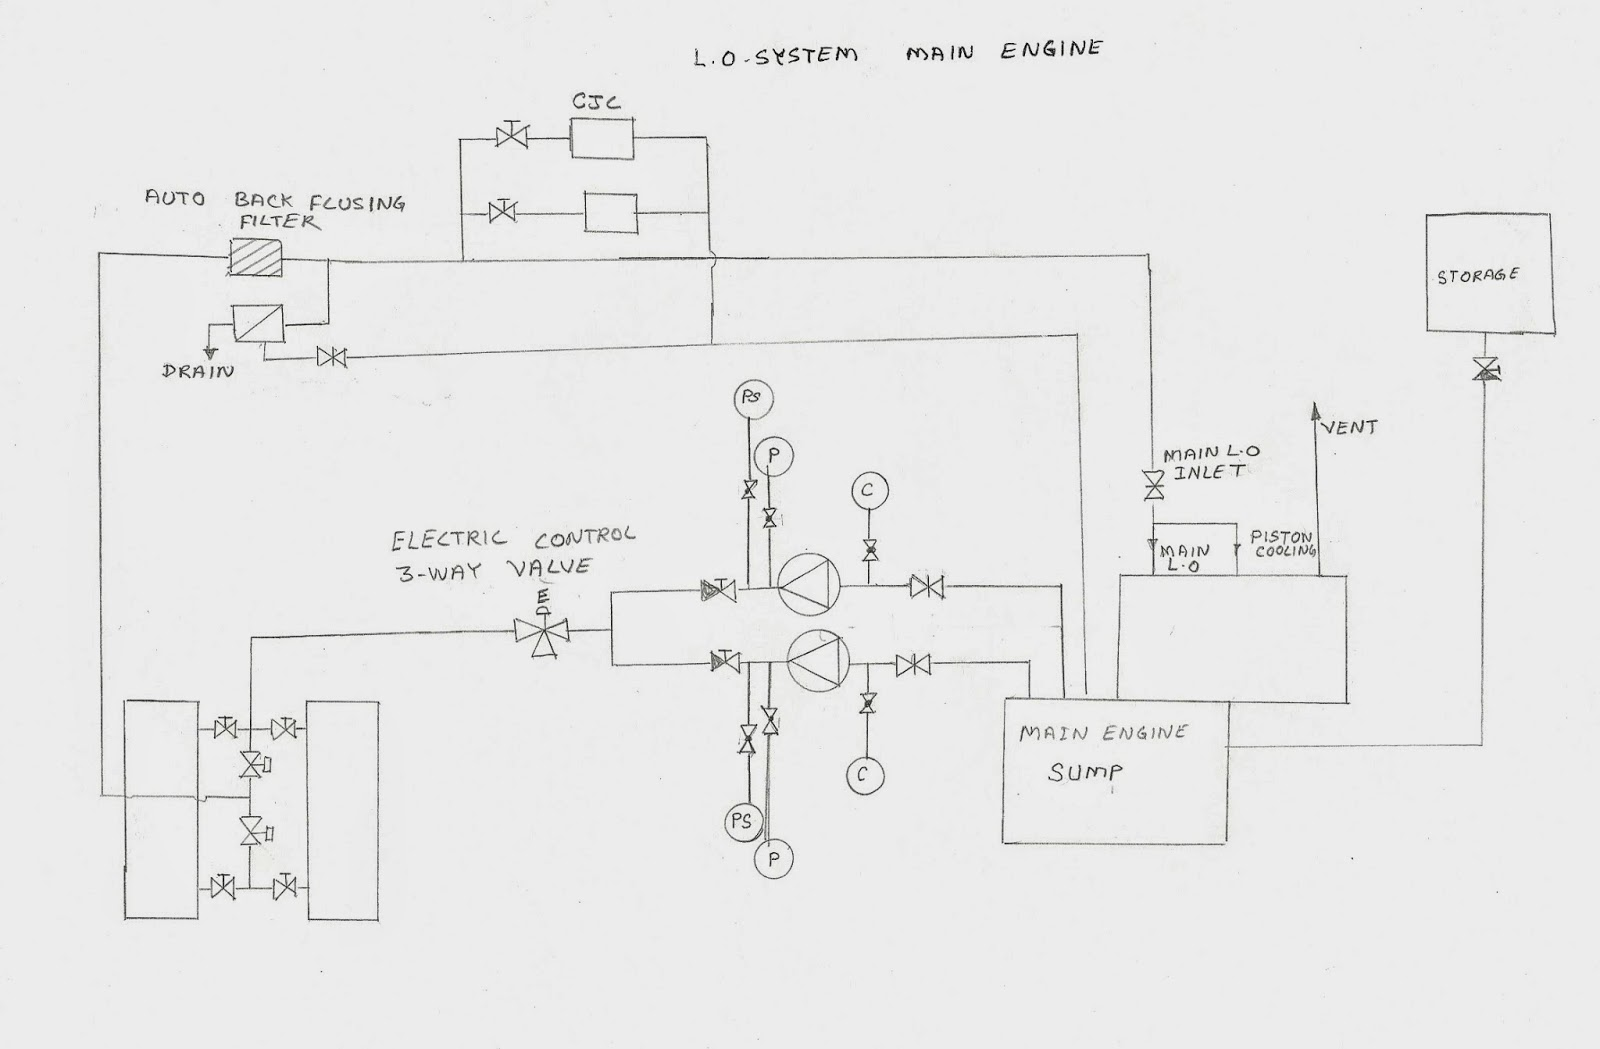 Lube Oil System Diagram Kenwood Kvt 514 Wiring Basic Line Of Engine Room For Junior Engineer And Rating Main